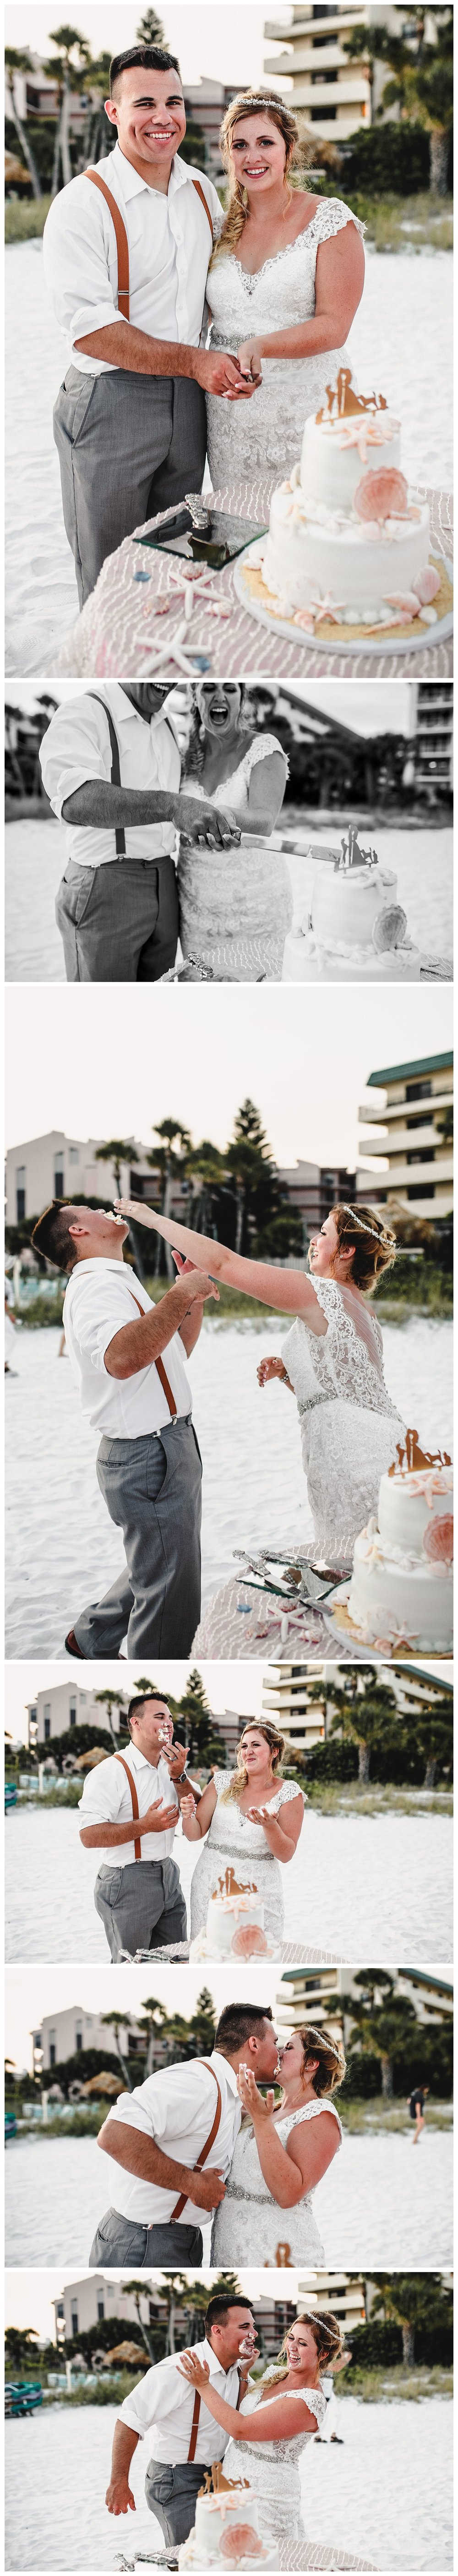 Kelsey_Diane_Photography_Destination_Wedding_Sarasota_Florida_Beach_Wedding_Alex_Austin_0683.jpg